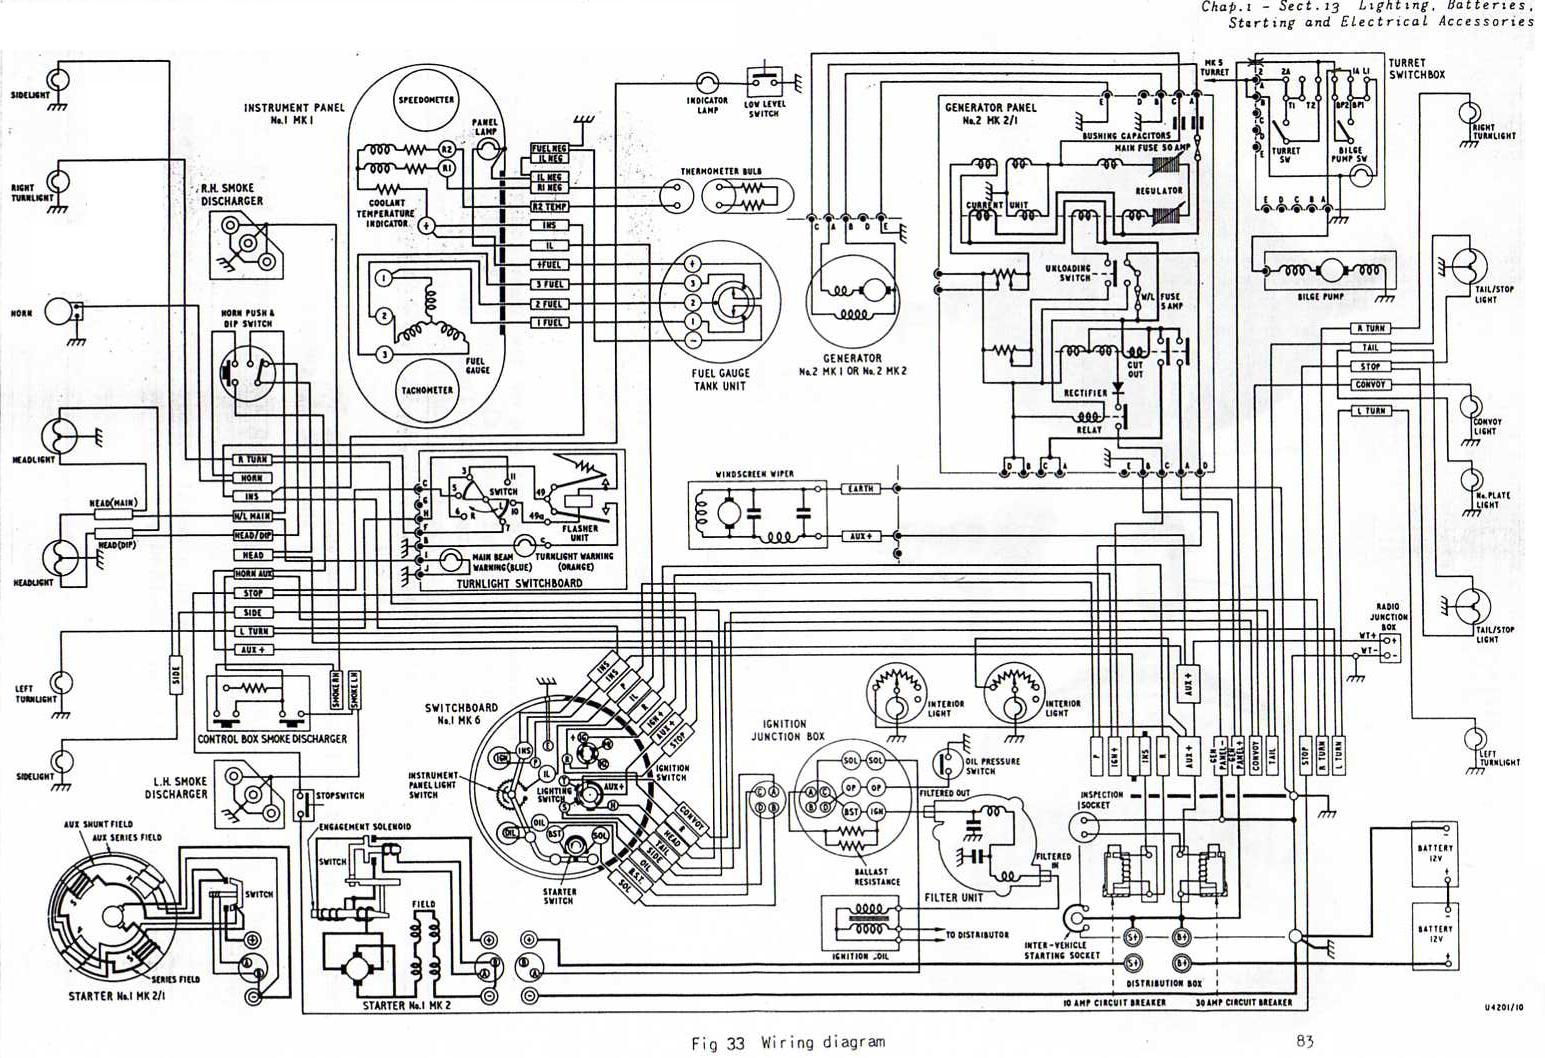 1969_wiring_diagram installation and service manuals for heating, heat pump, and air understanding complex wiring diagrams at reclaimingppi.co